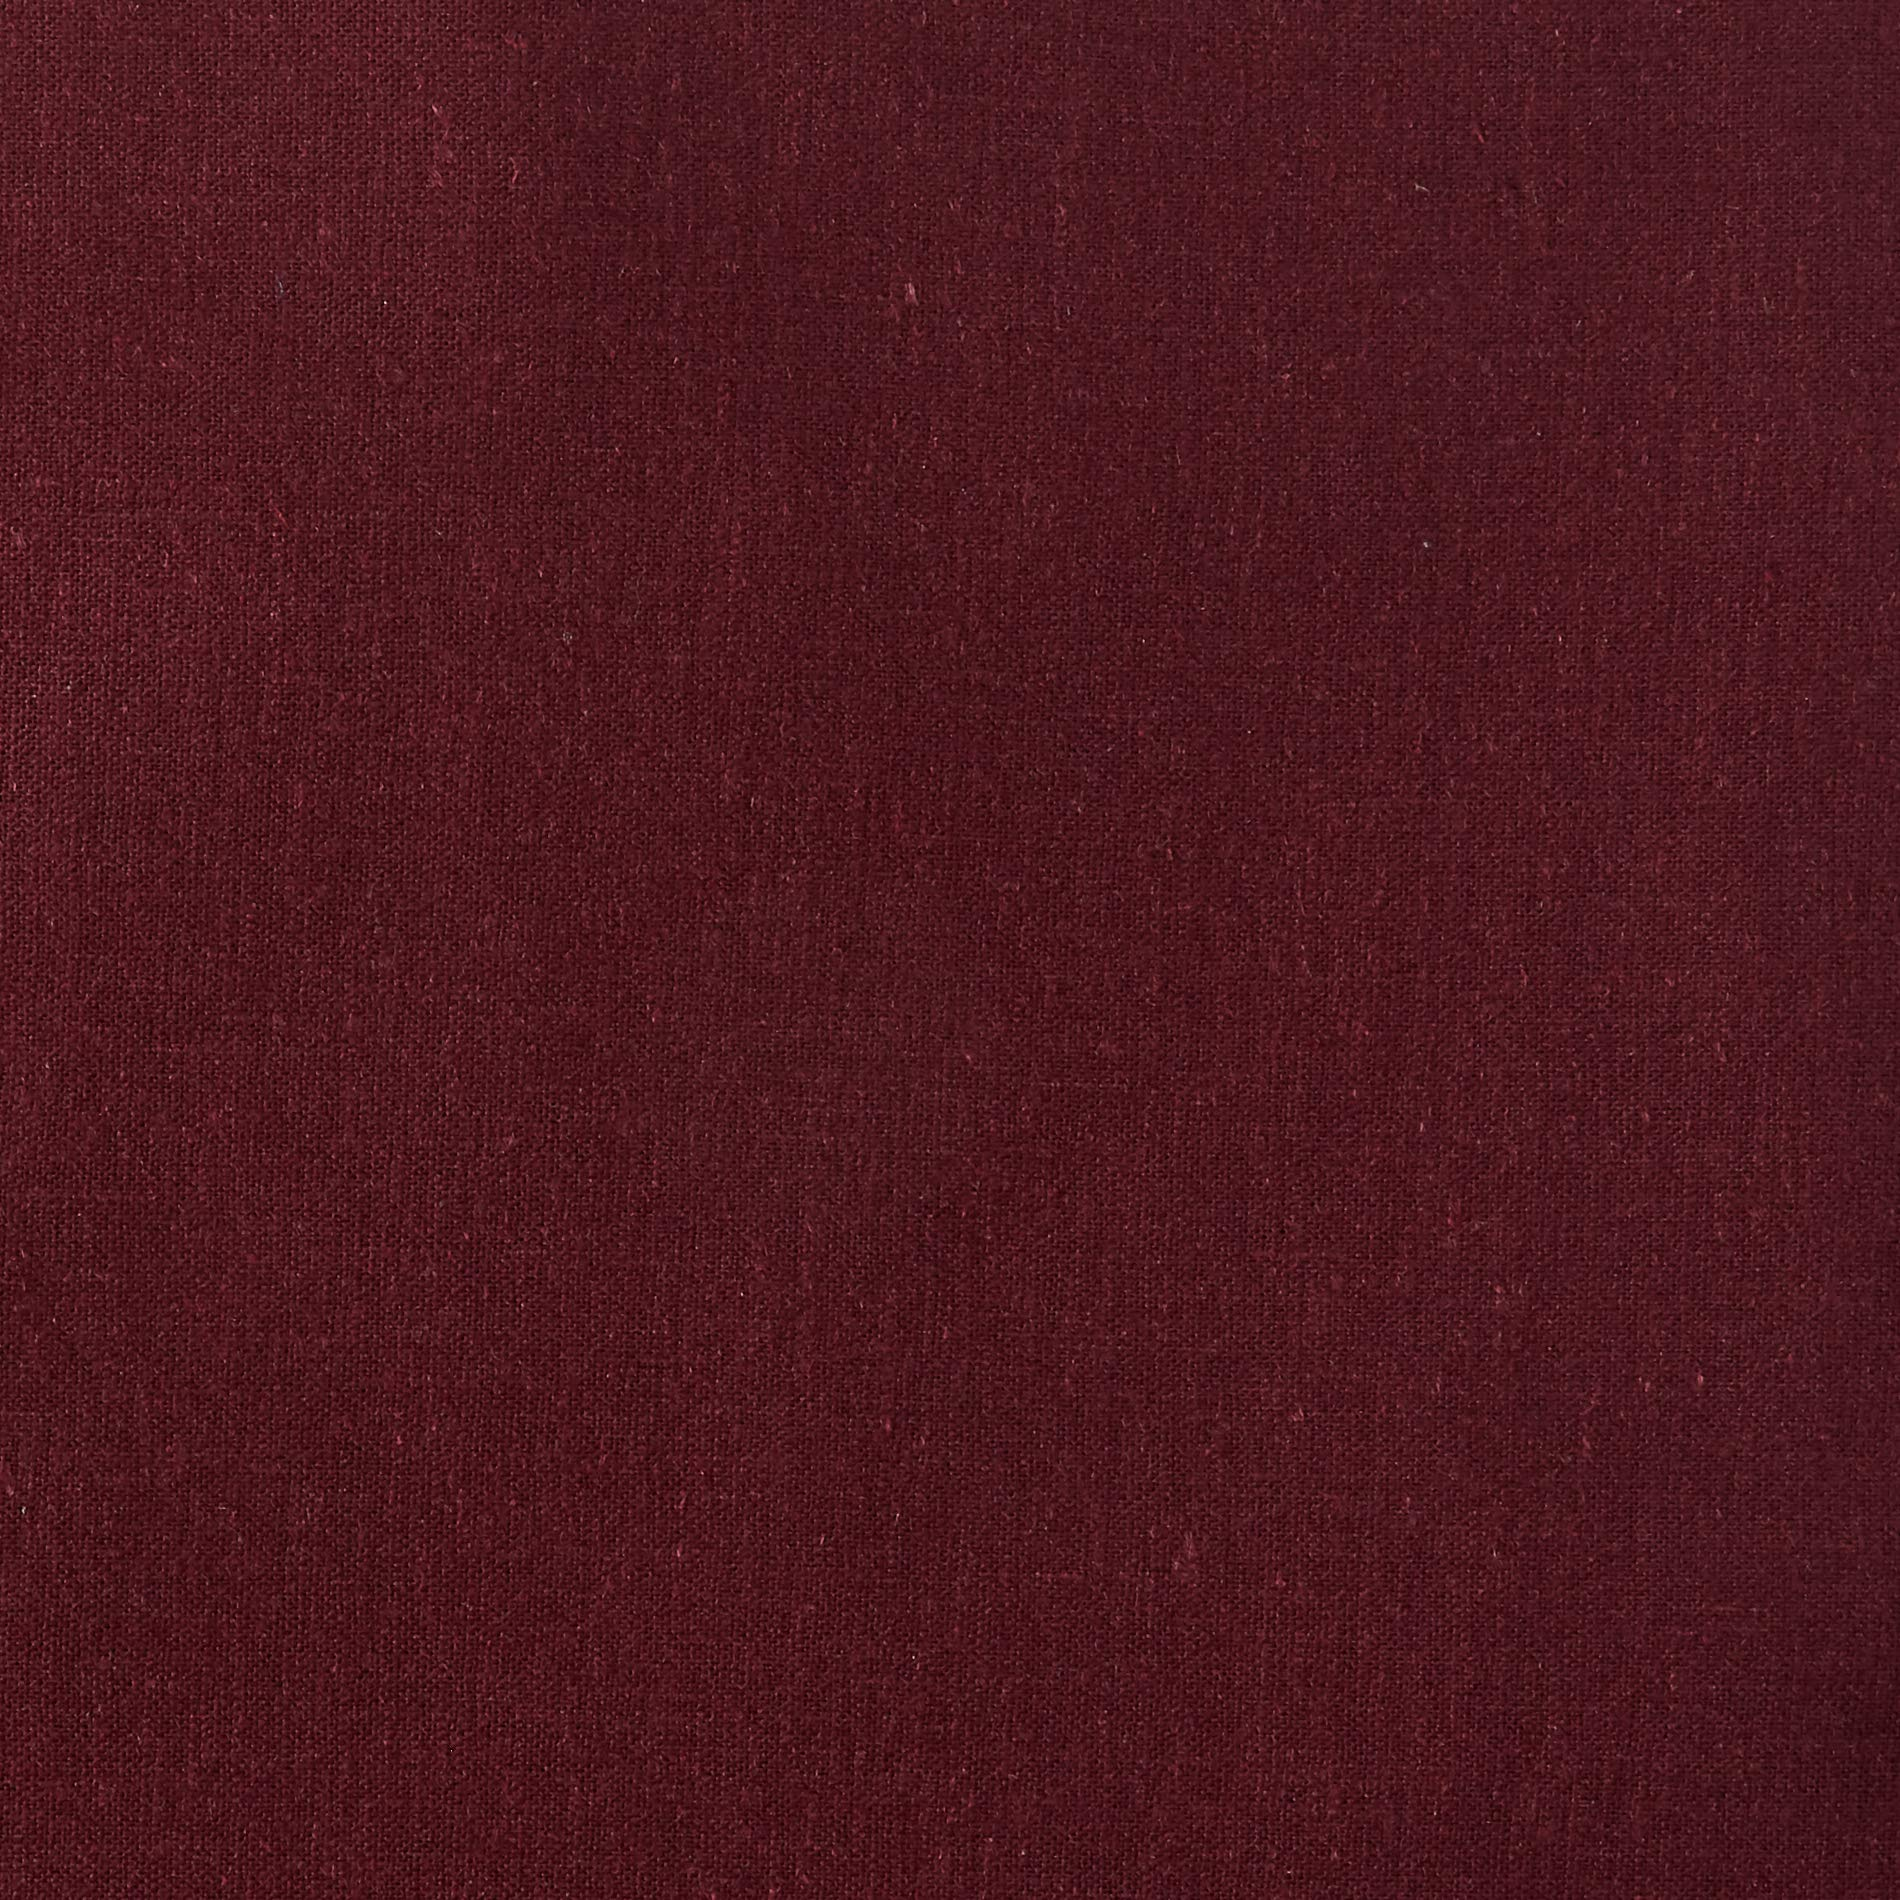 *NEW* Viscose//Rayon Smooth Drapey  Dress//Crafts Fabric*FREE P/&P*6 Colours*